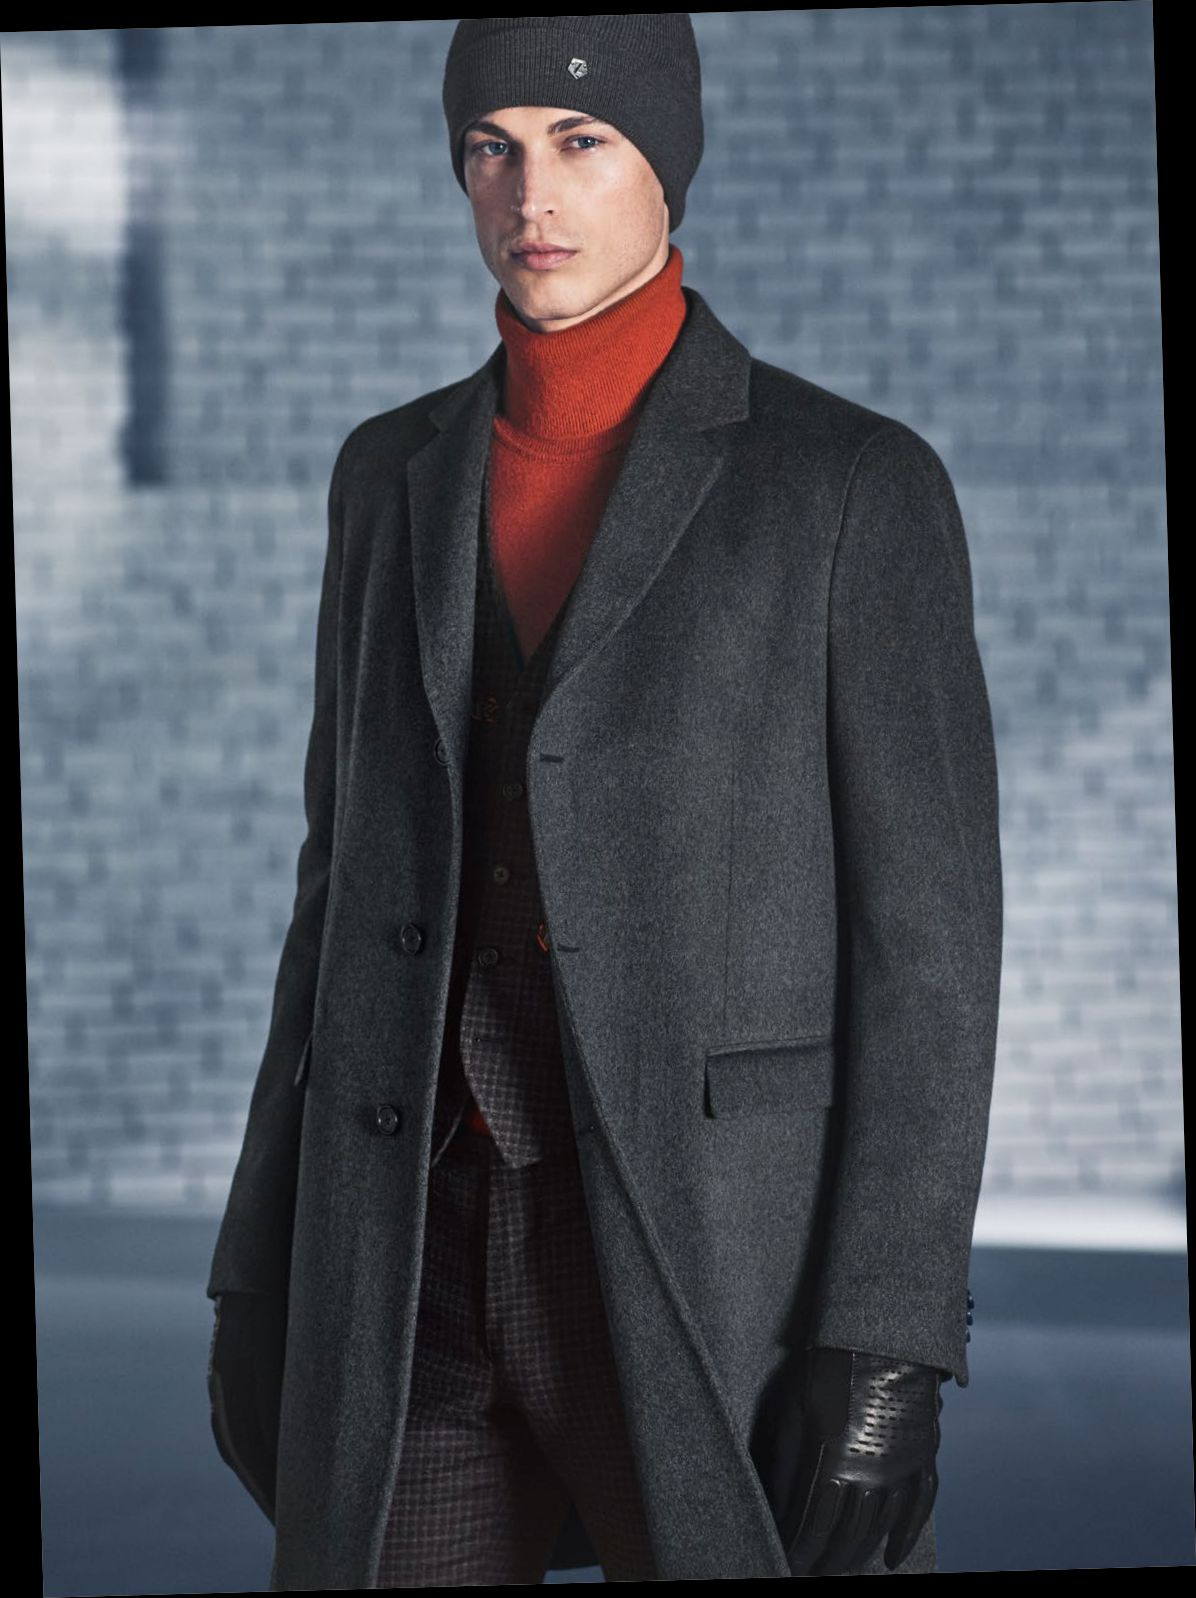 zzegna fall winter 2016 menswear collection 010zzegna fall winter 2016 menswear collection 010 Z Zegna Fall/Winter 2016 Menswear Collection